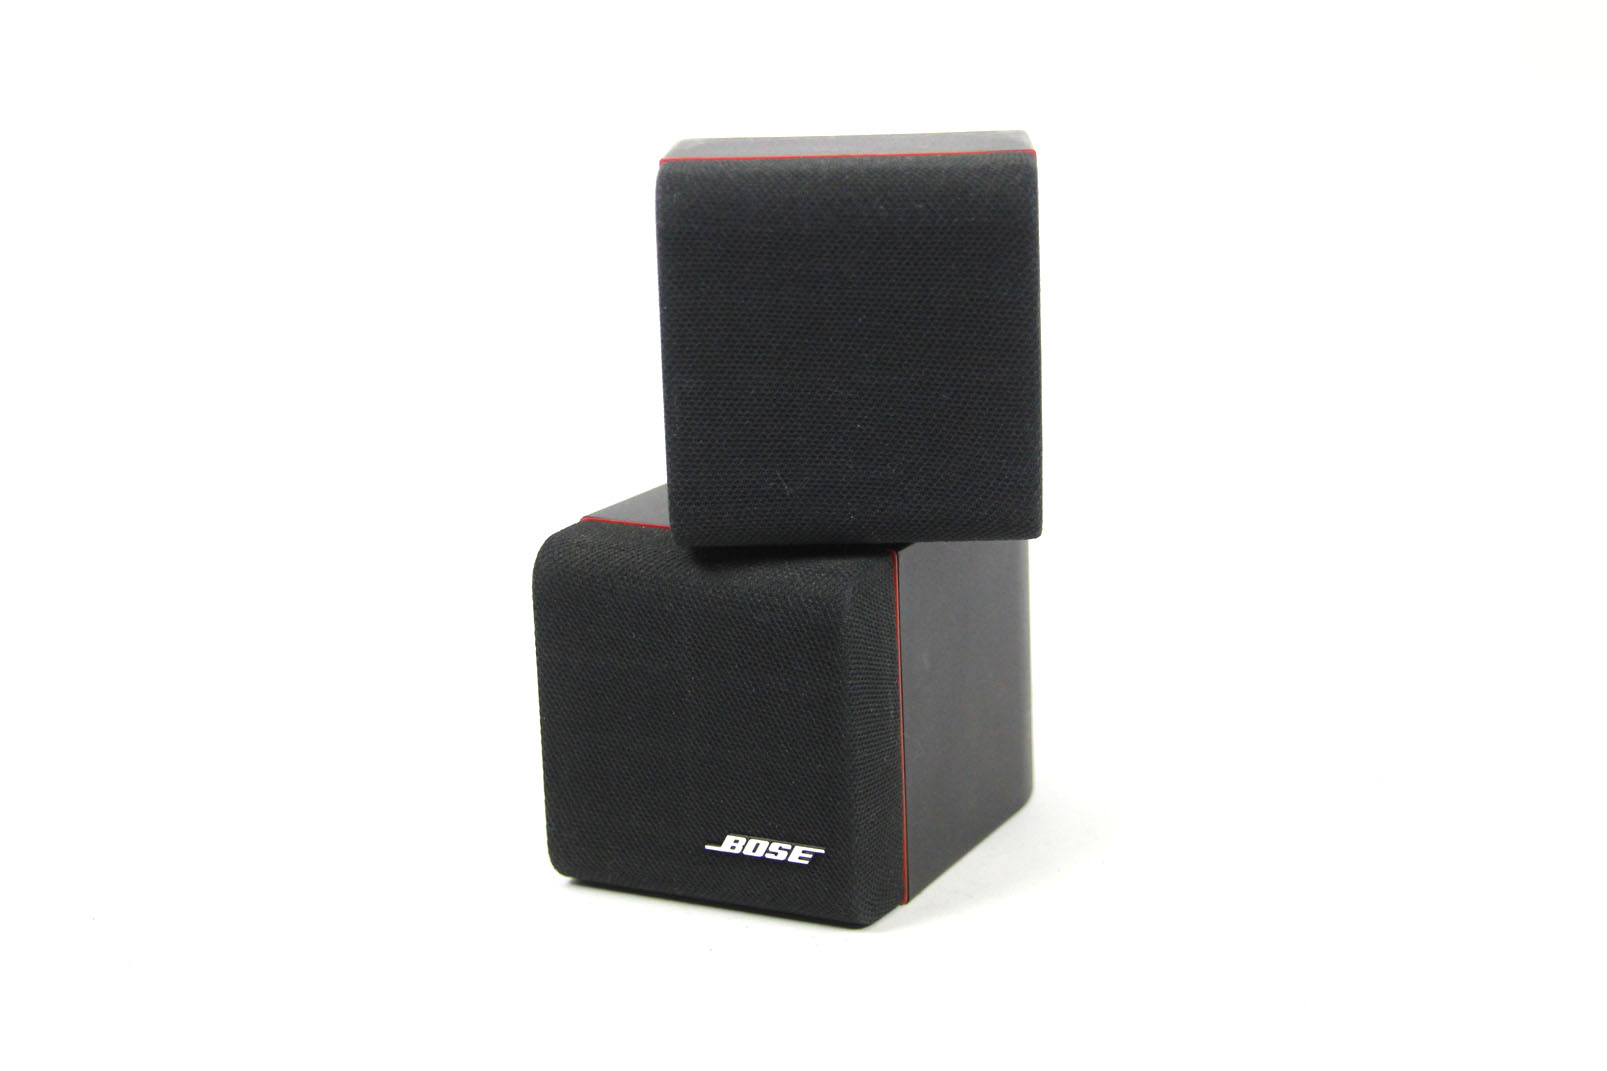 bose stereo lautsprecher acoustimass speaker doppel cube satelliten box black ebay. Black Bedroom Furniture Sets. Home Design Ideas